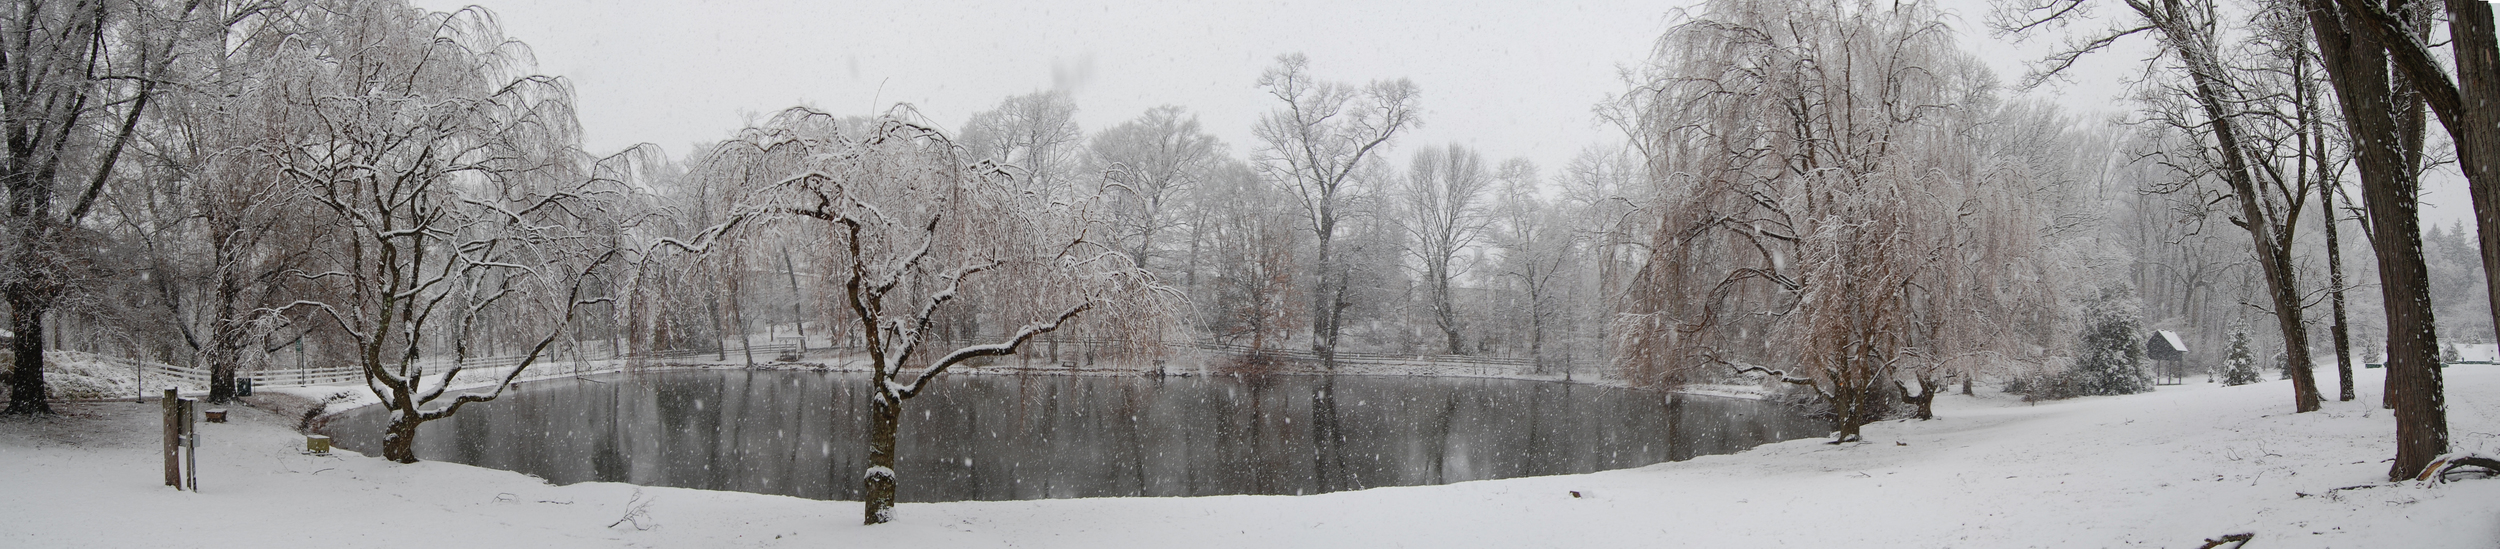 Snowy panoramas - Winter arrived in Bucks County today